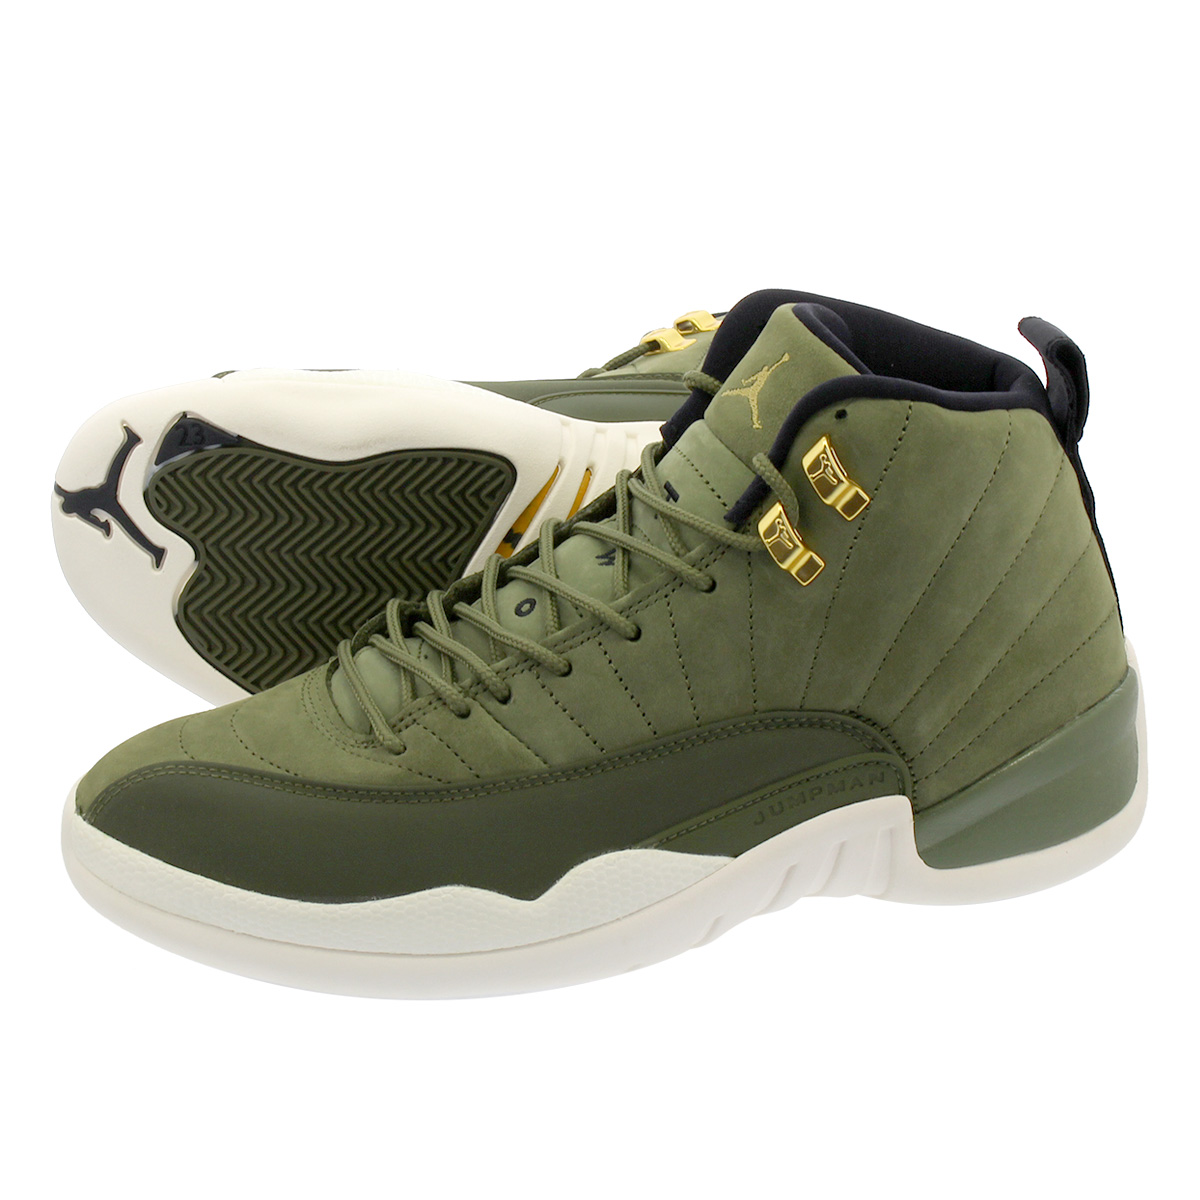 NIKE AIR JORDAN 12 RETRO 【CLASS OF 2003】 ナイキ エア ジョーダン 12 レトロ OLIVE CANVAS/METALLIC GOLD/BLACK/SAIL 130690-301